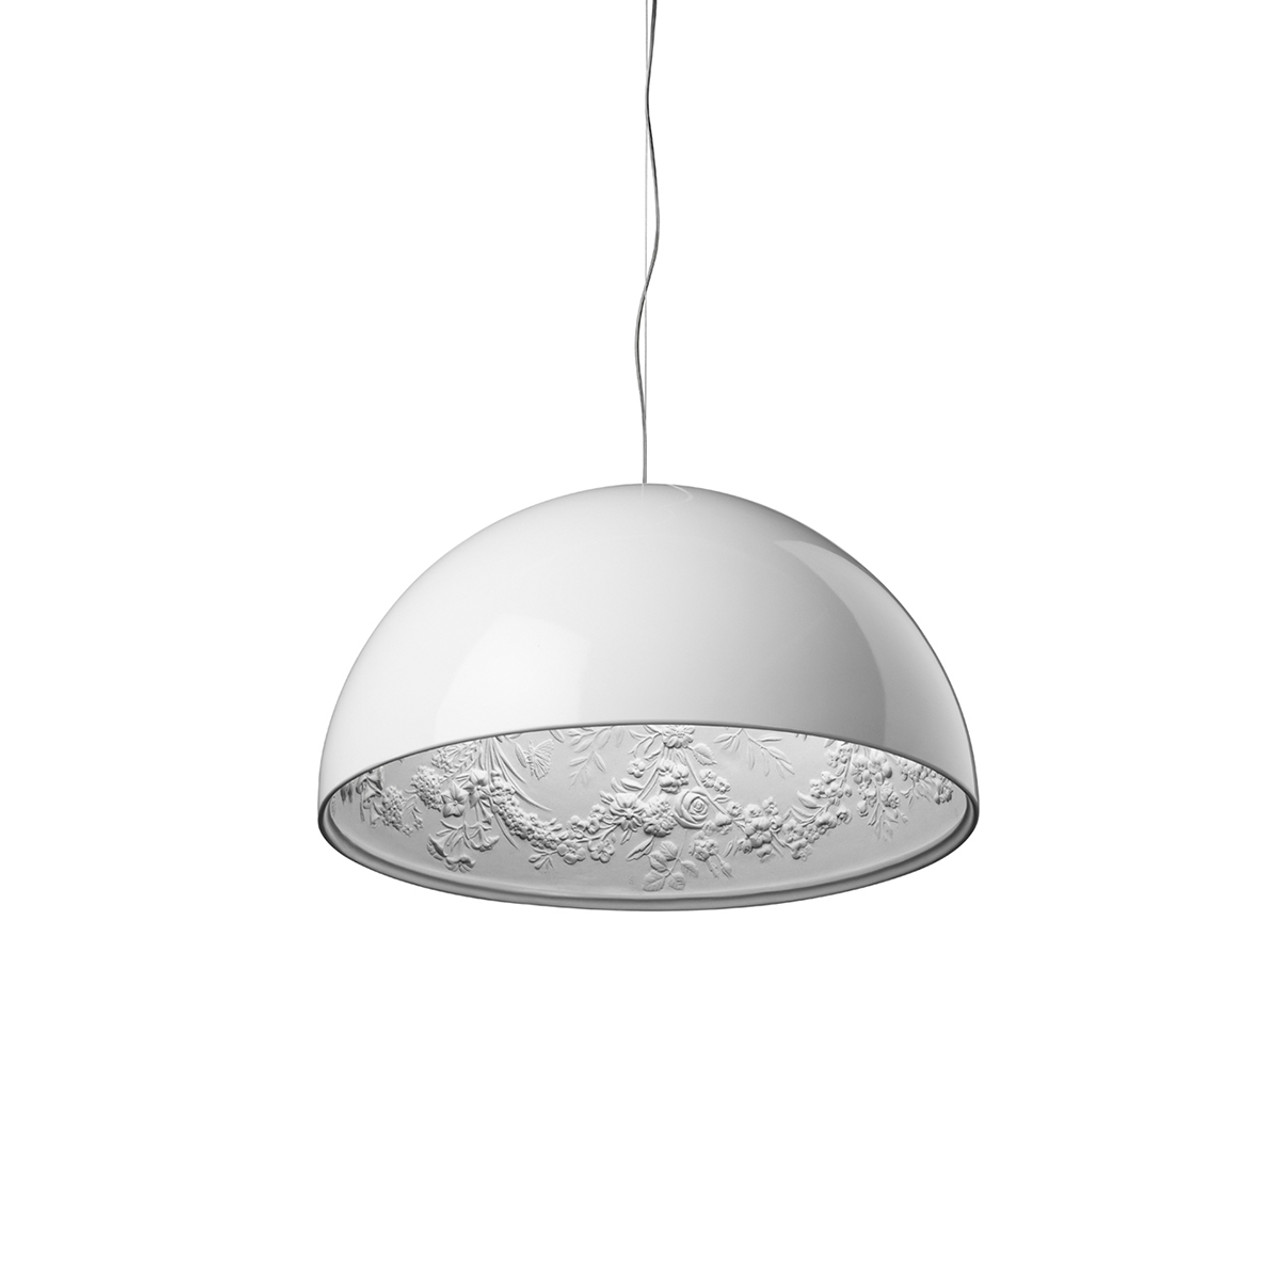 Skygarden s pendant dimmable light in white black brown or gold